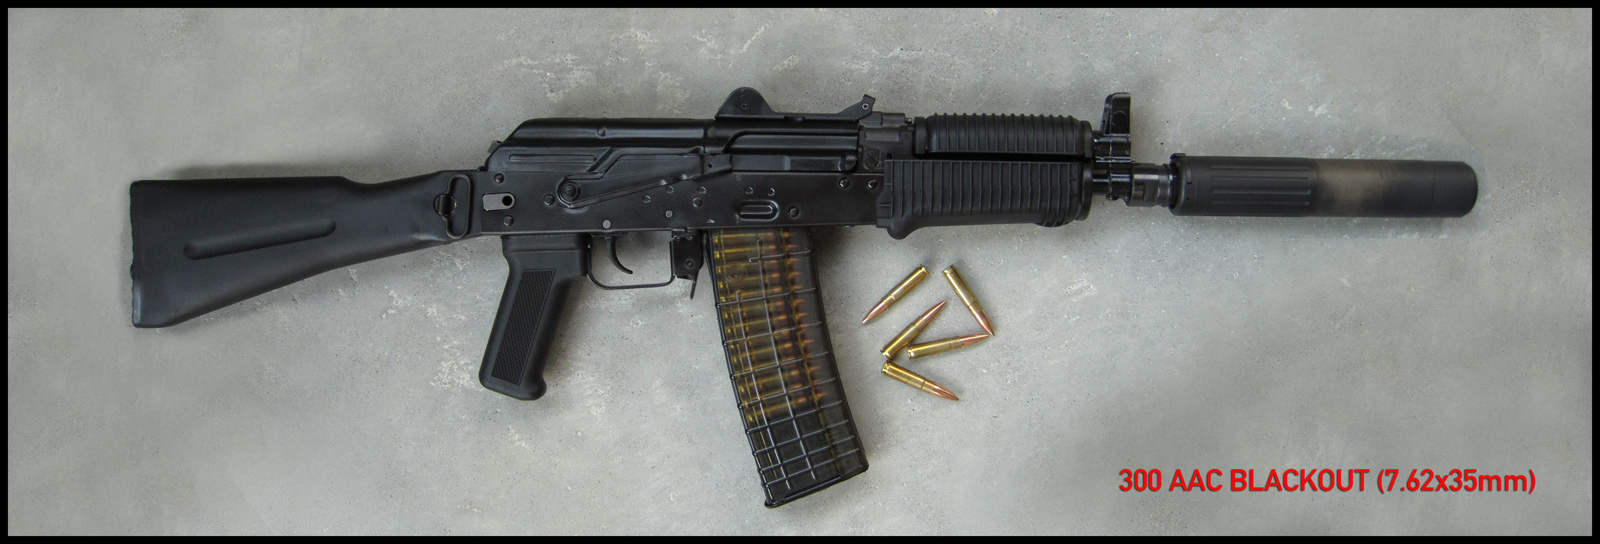 Kalashnikov AKSU AK SBR 300 AAC Blackout Rob Silvers 2 <!  :en  >Kalashnikov AKSU AKM SBR/Sub Carbine Chambered in 300 AAC Blackout Test Fired at the Range (Video!) <!  :  >